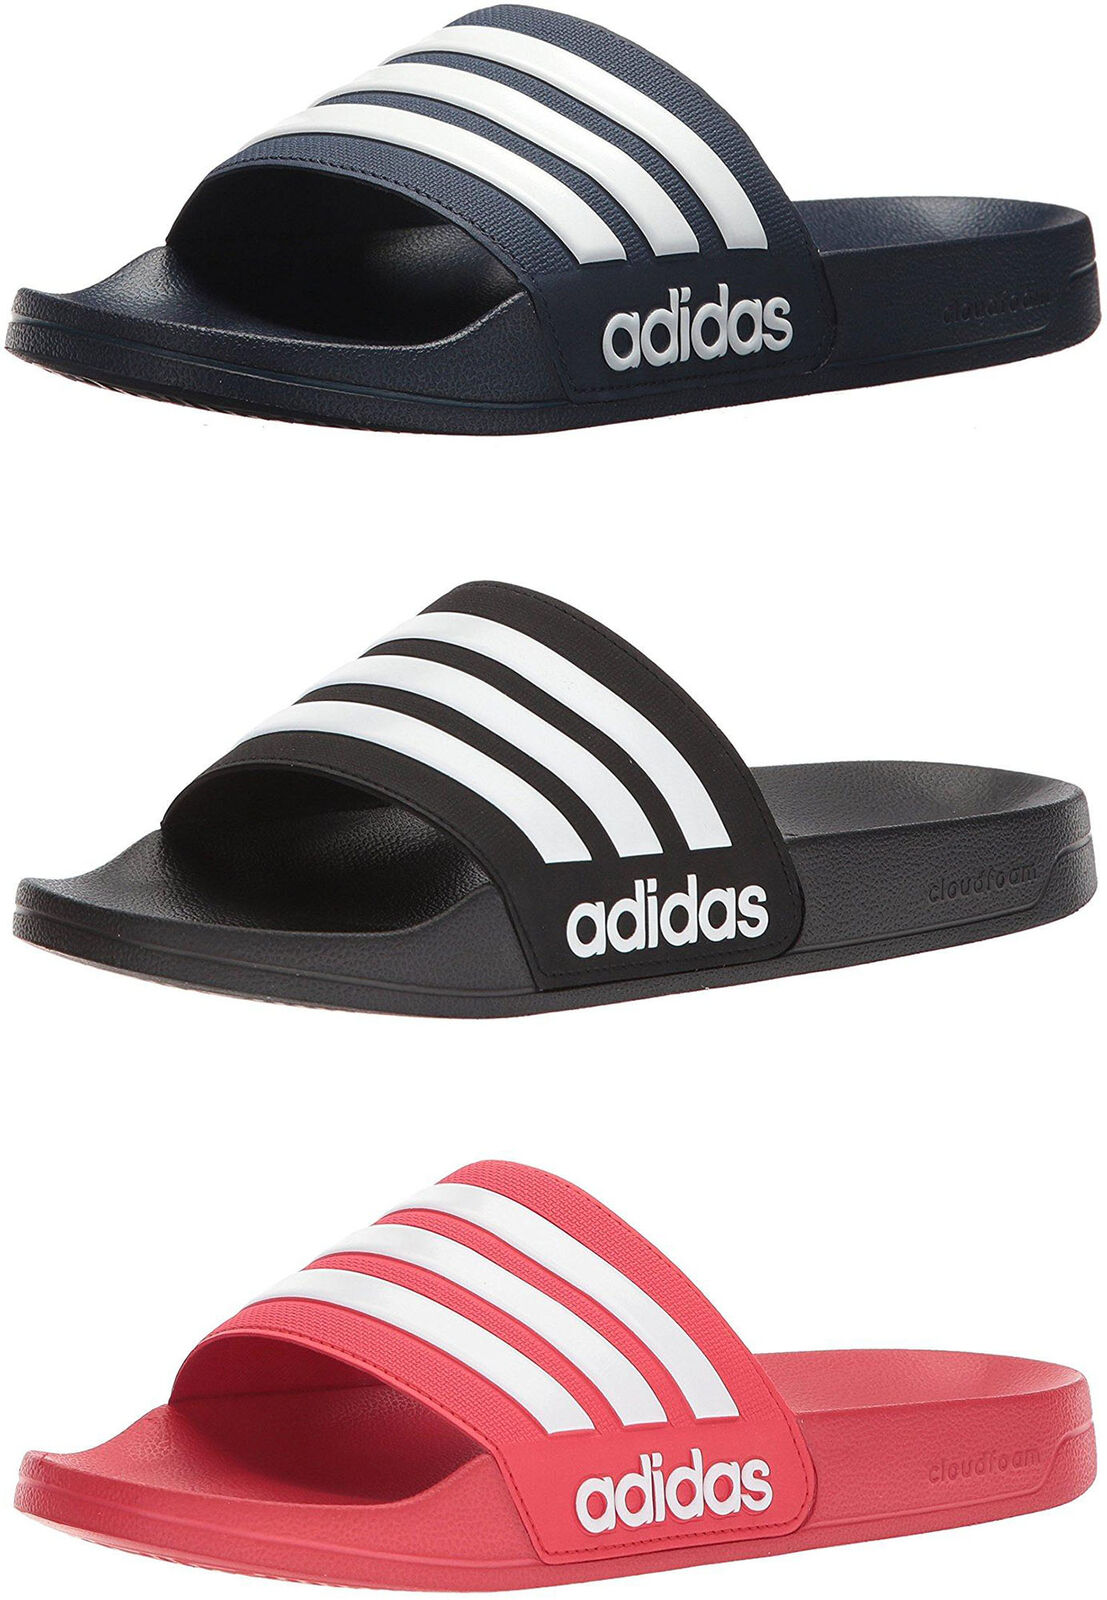 9460d8cc01 adidas Neo Men s Cloudfoam Adilette Slide Sandals